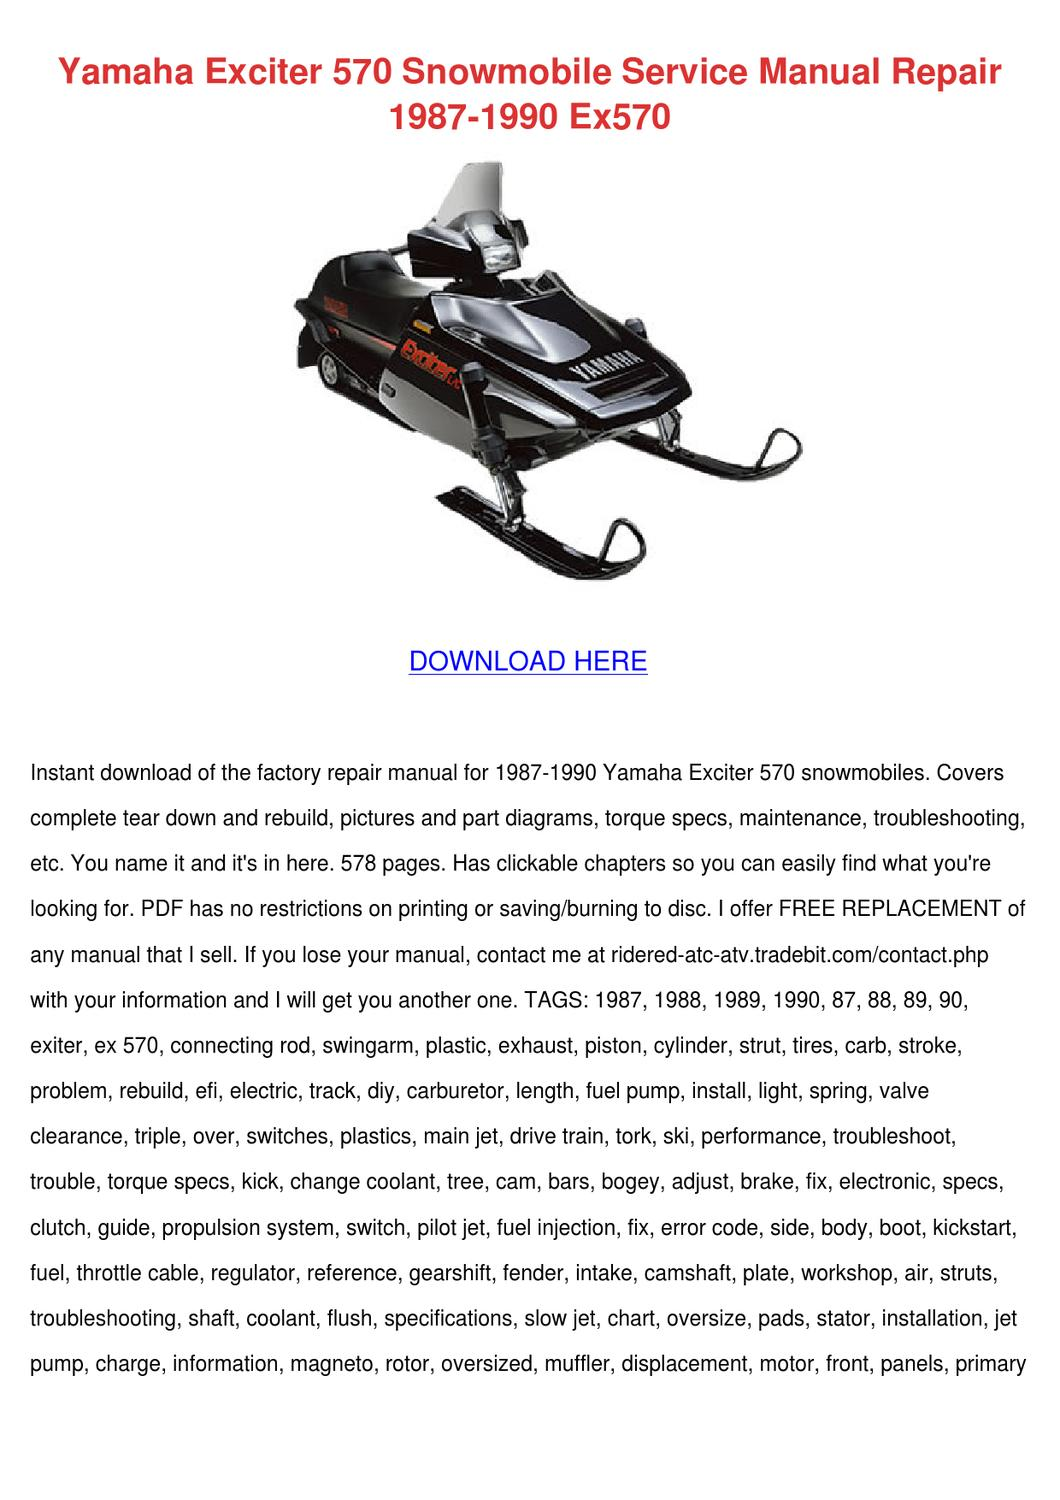 Yamaha Exciter 570 Snowmobile Service Manual by Sheryll Dornak - issuu